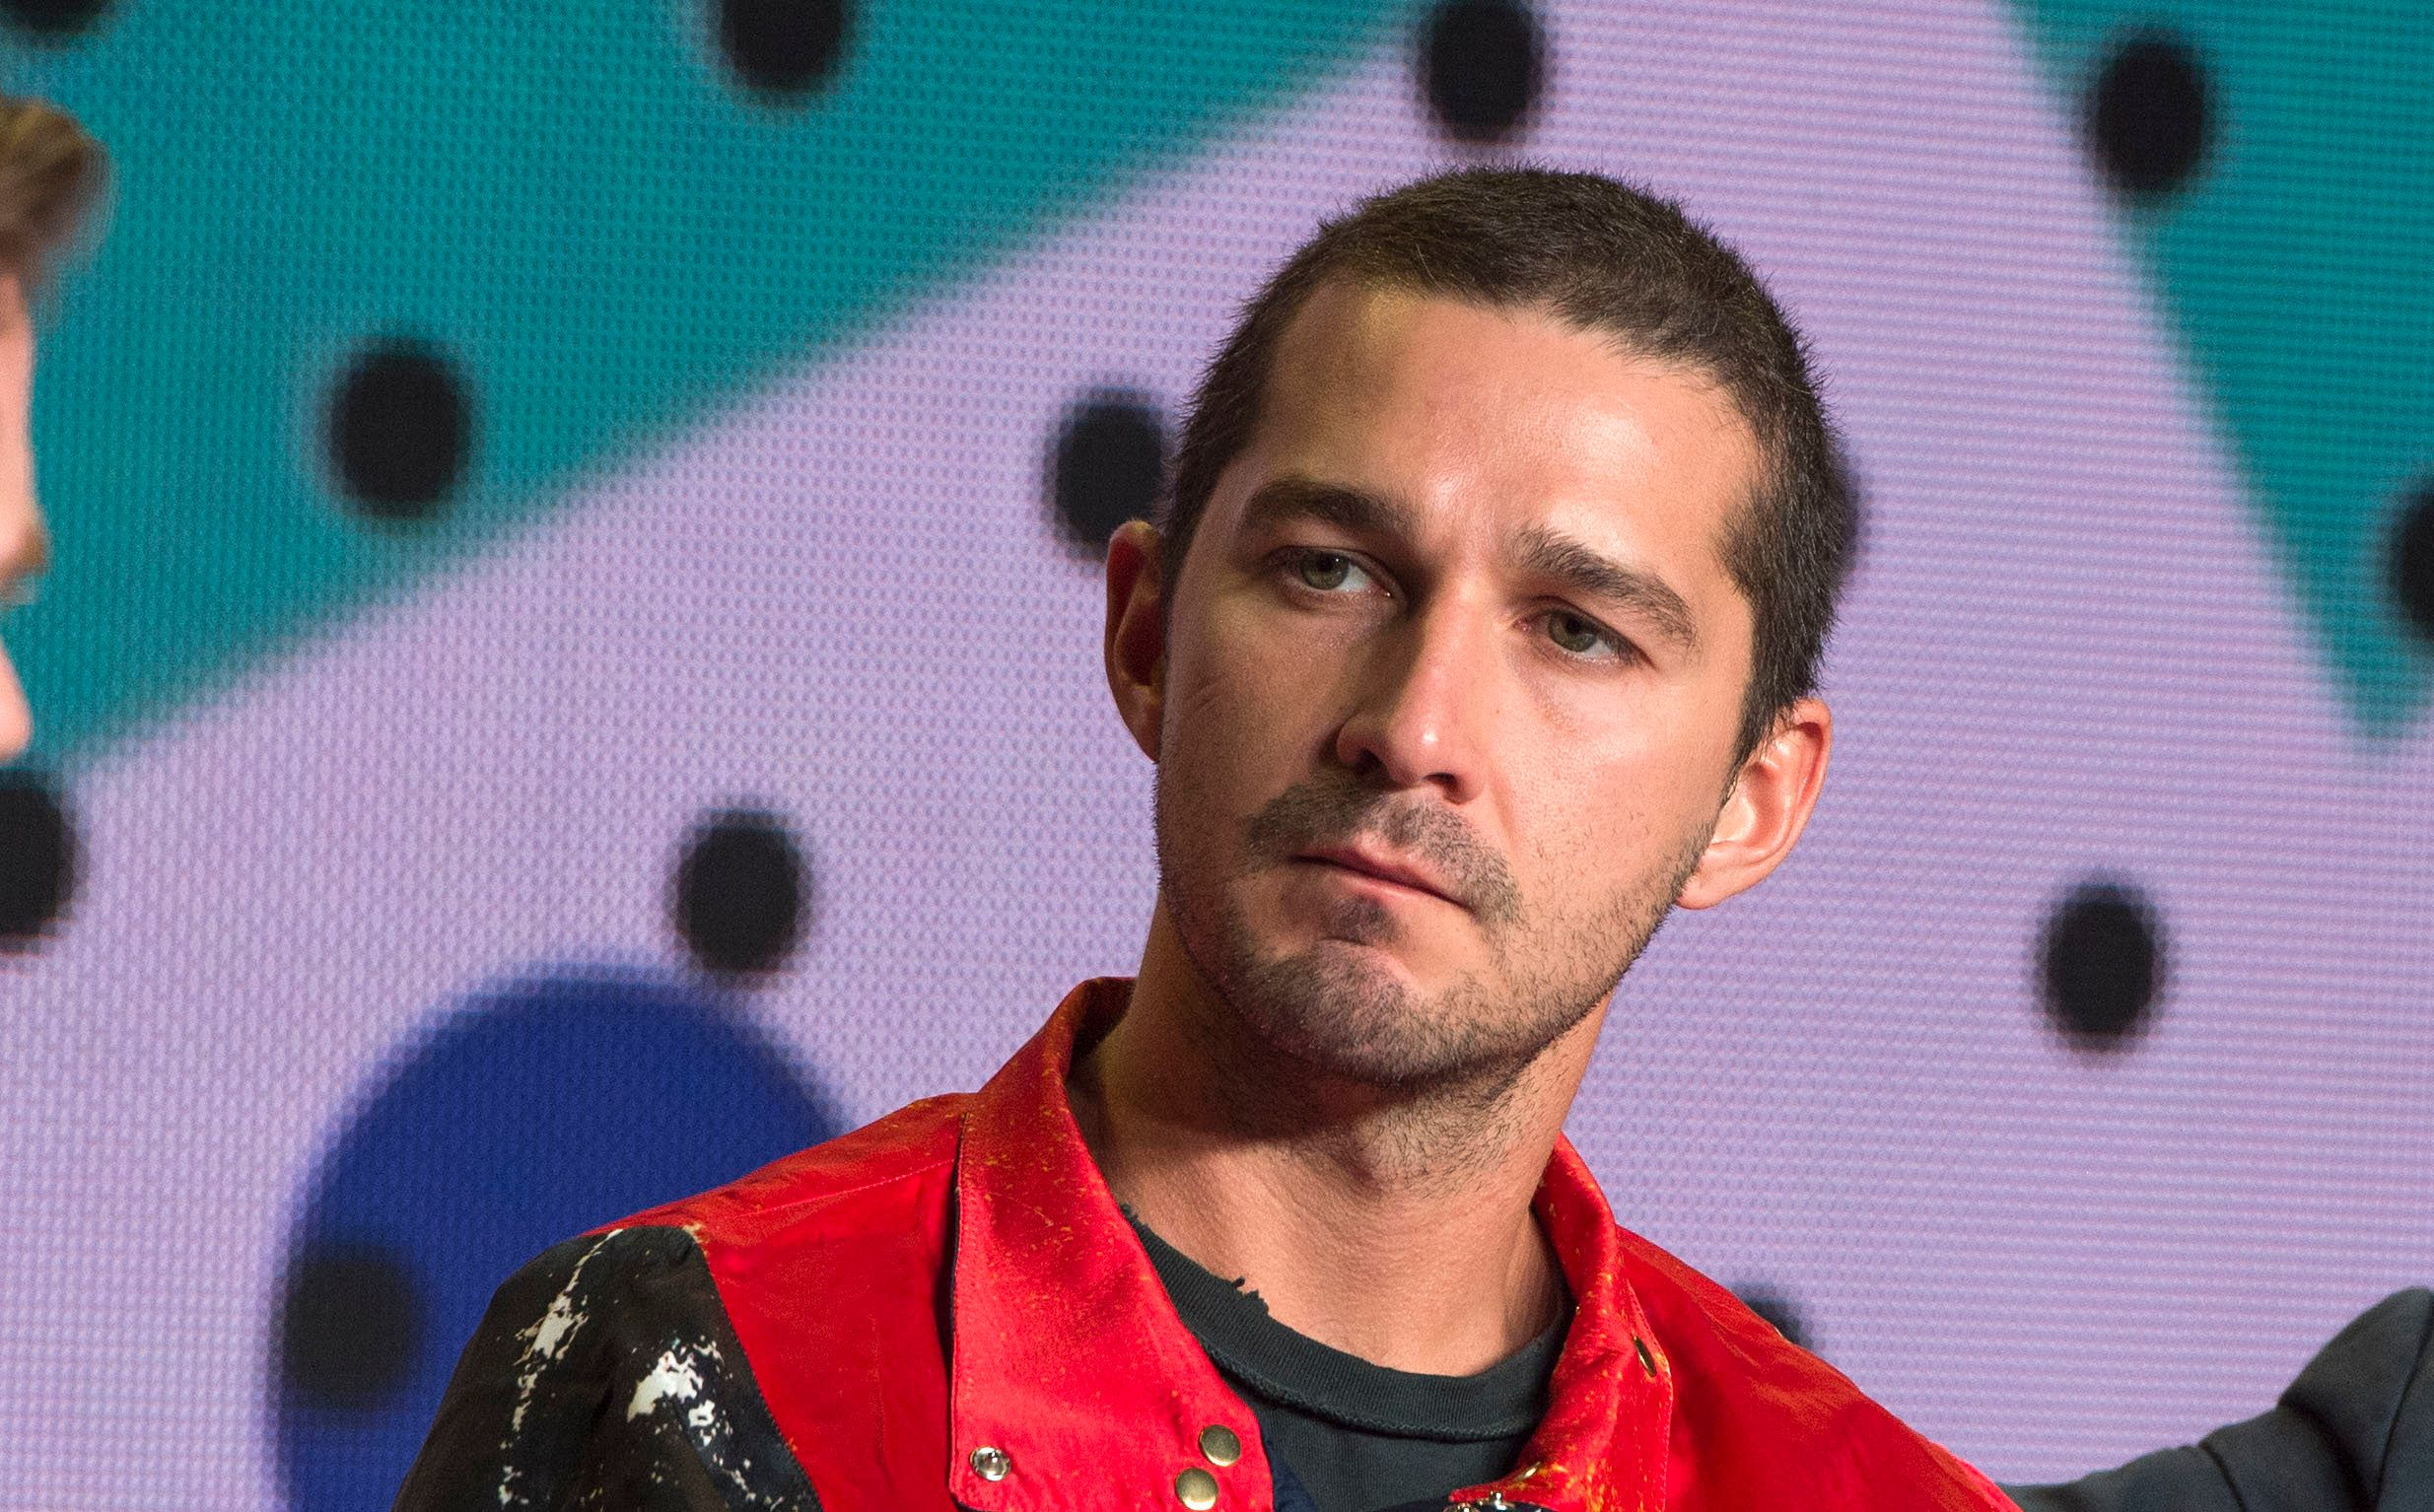 Actor Shia LaBeouf attends the press conference for 'Borg/McEnroe' during the 2017 Toronto International Film Festival at TIFF Bell Lightbox September 7, 2017, in Toronto, Ontario. / AFP PHOTO / VALERIE MACON        (Photo credit should read VALERIE MACON/AFP/Getty Images)